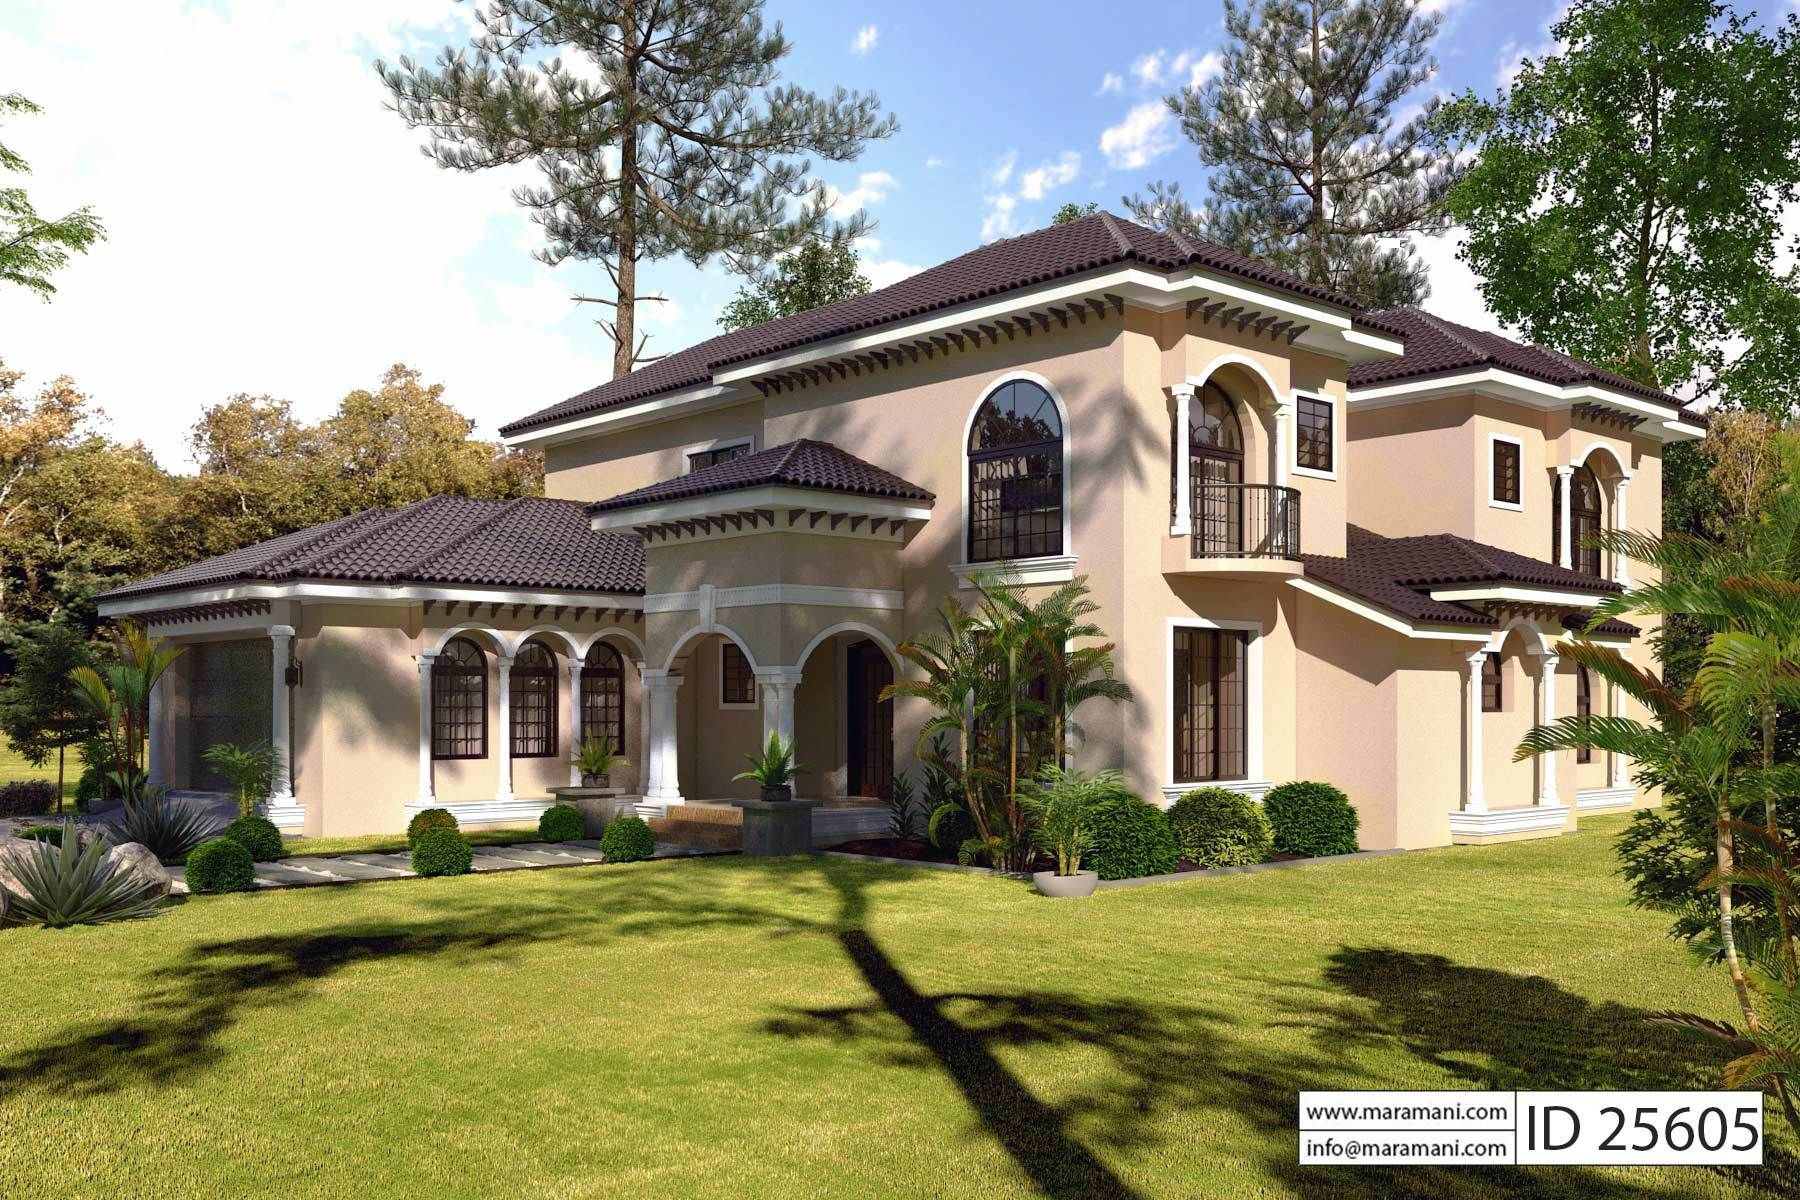 Open Floor House Plans Id 25605 House Designs By Maramani House Plans Open Floor House Plans 5 Bedroom House Plans